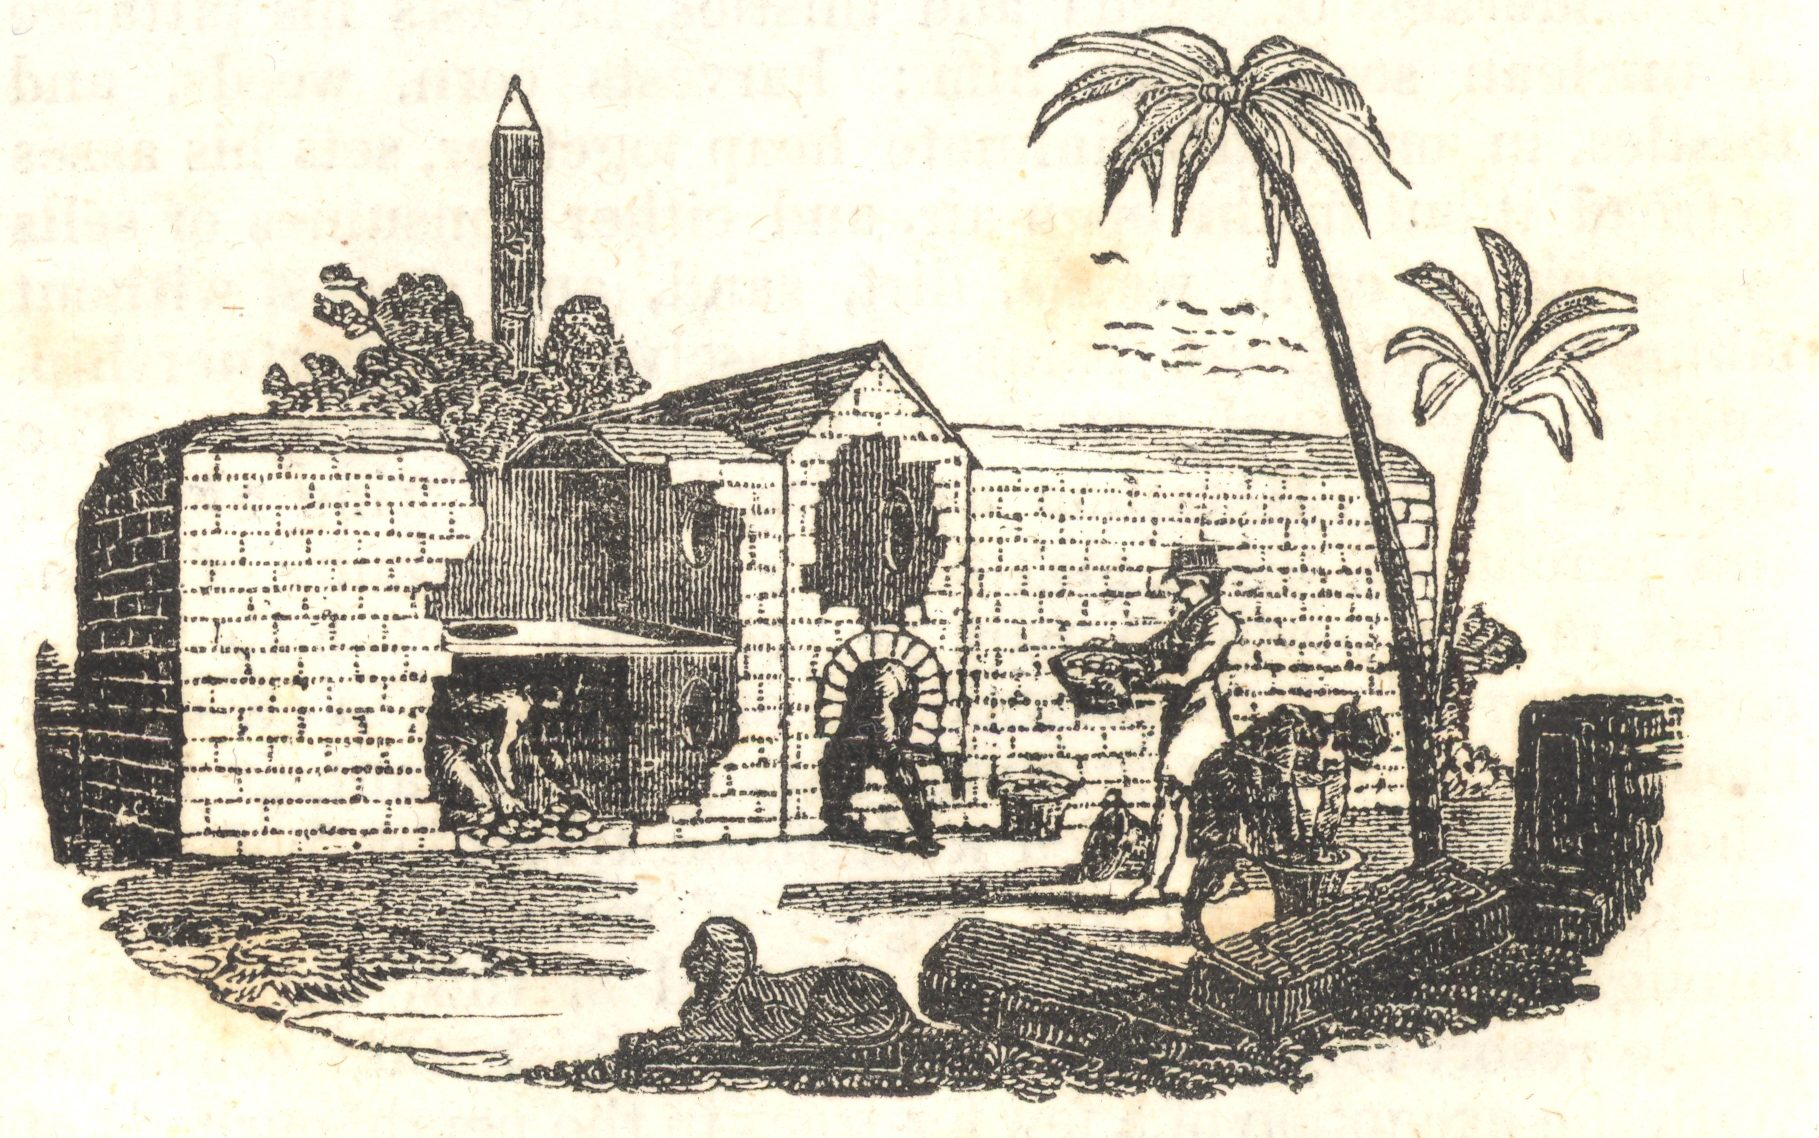 An illustration depicting an Egyptian egg oven